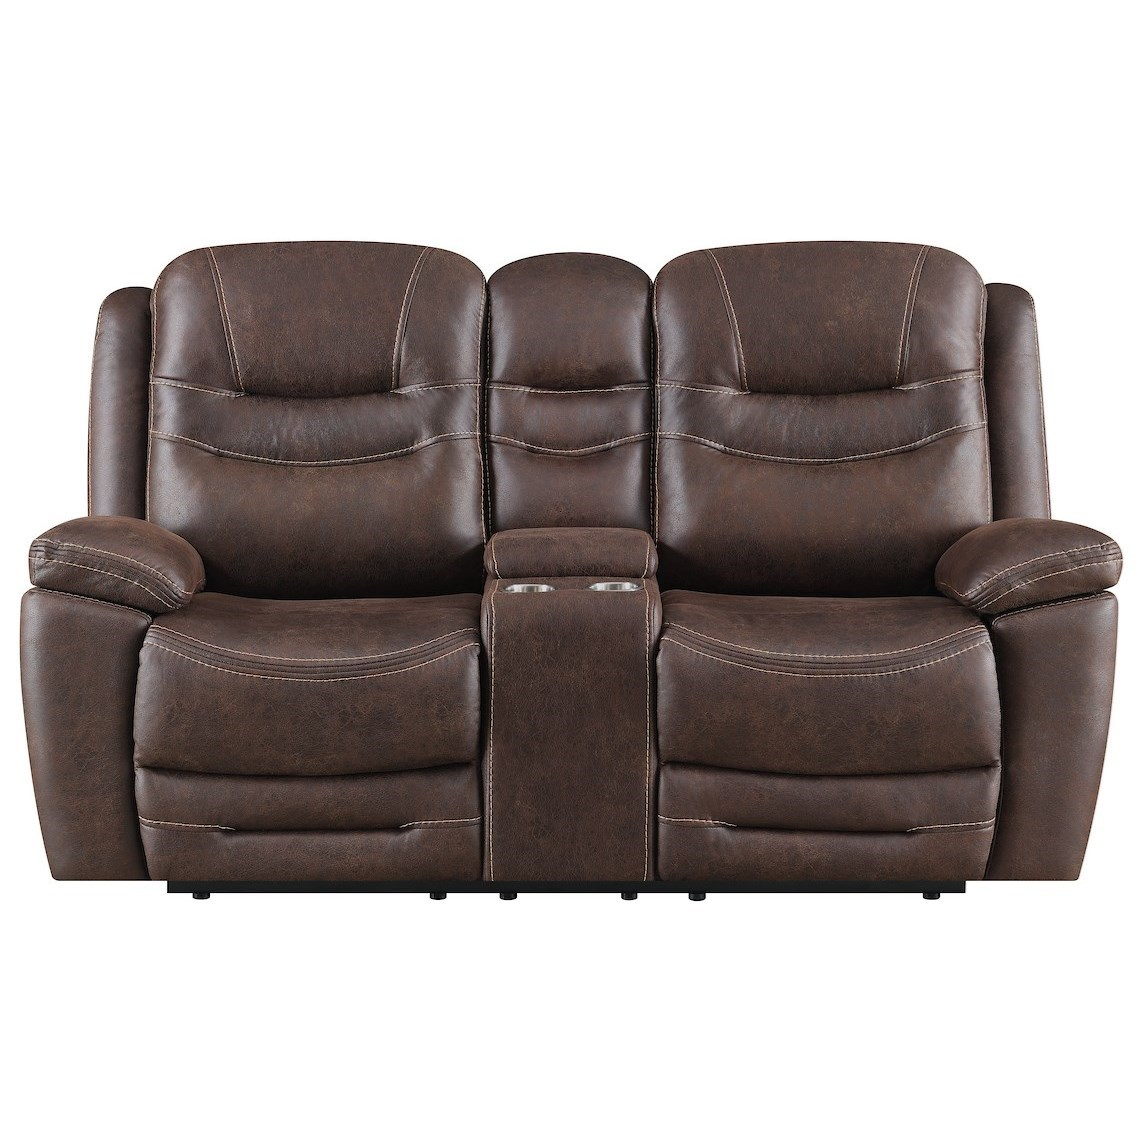 Turismo Power Reclining Console Loveseat by Klaussner International at Northeast Factory Direct